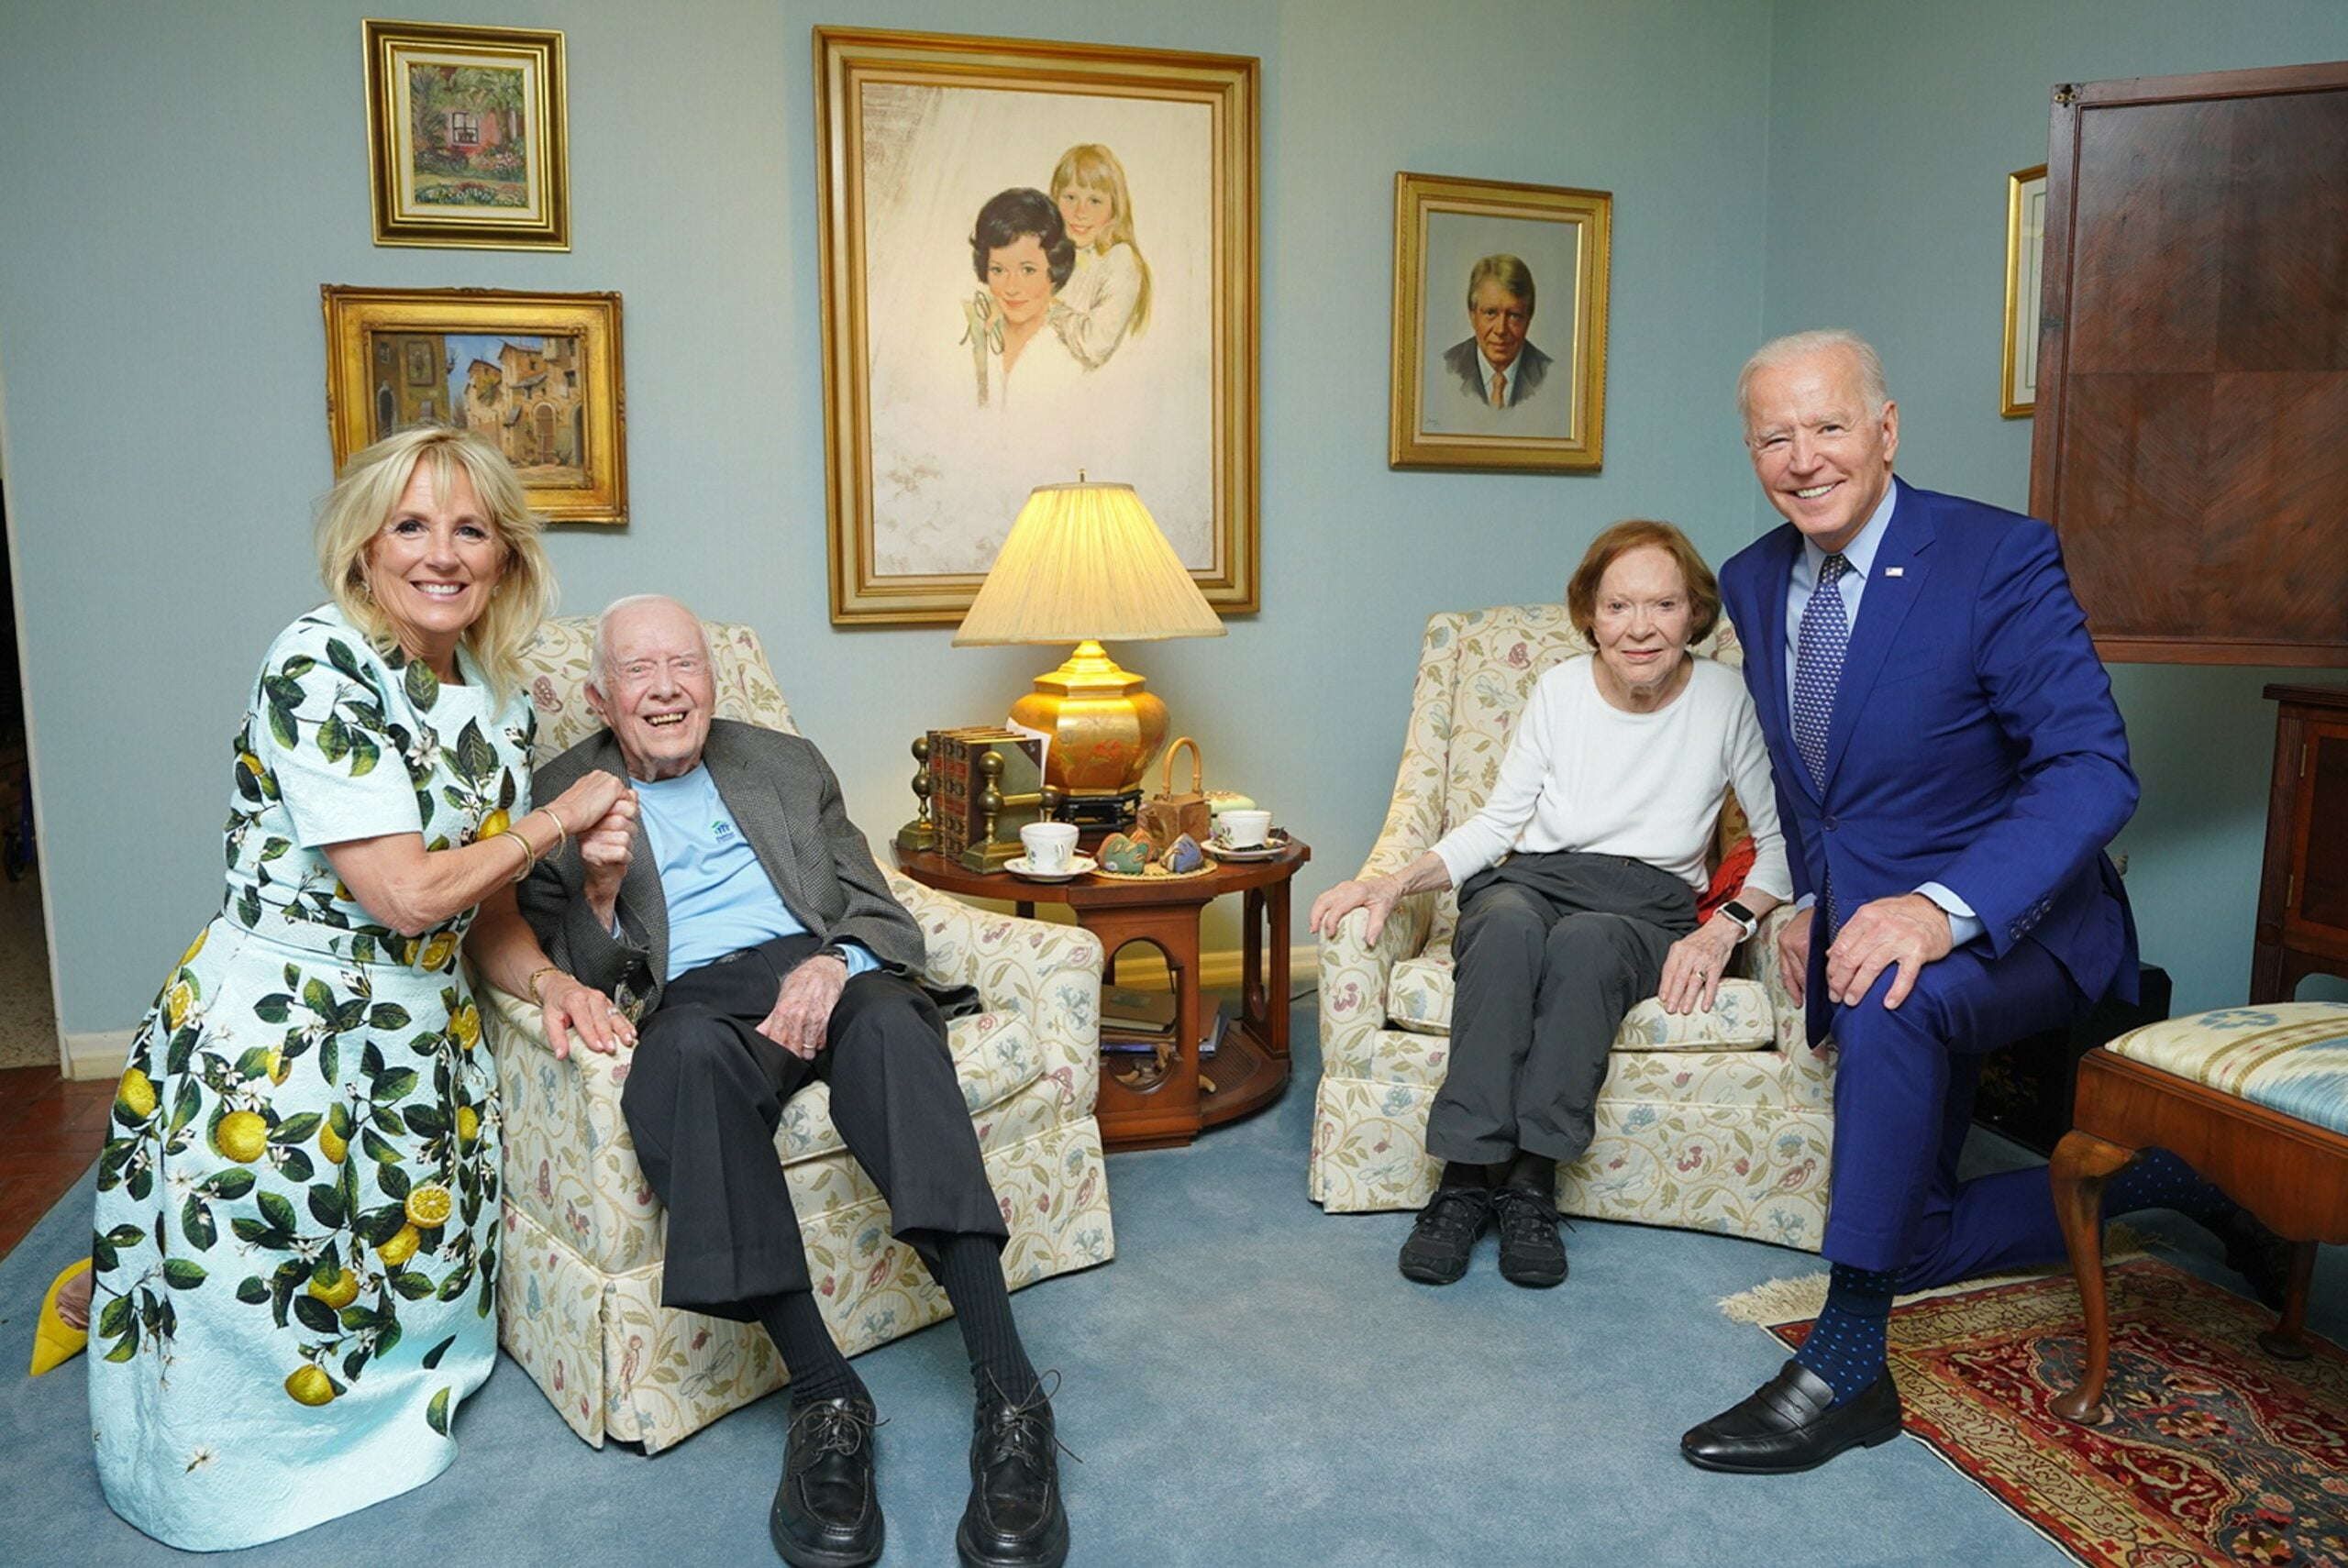 Photo in which the Bidens look huge